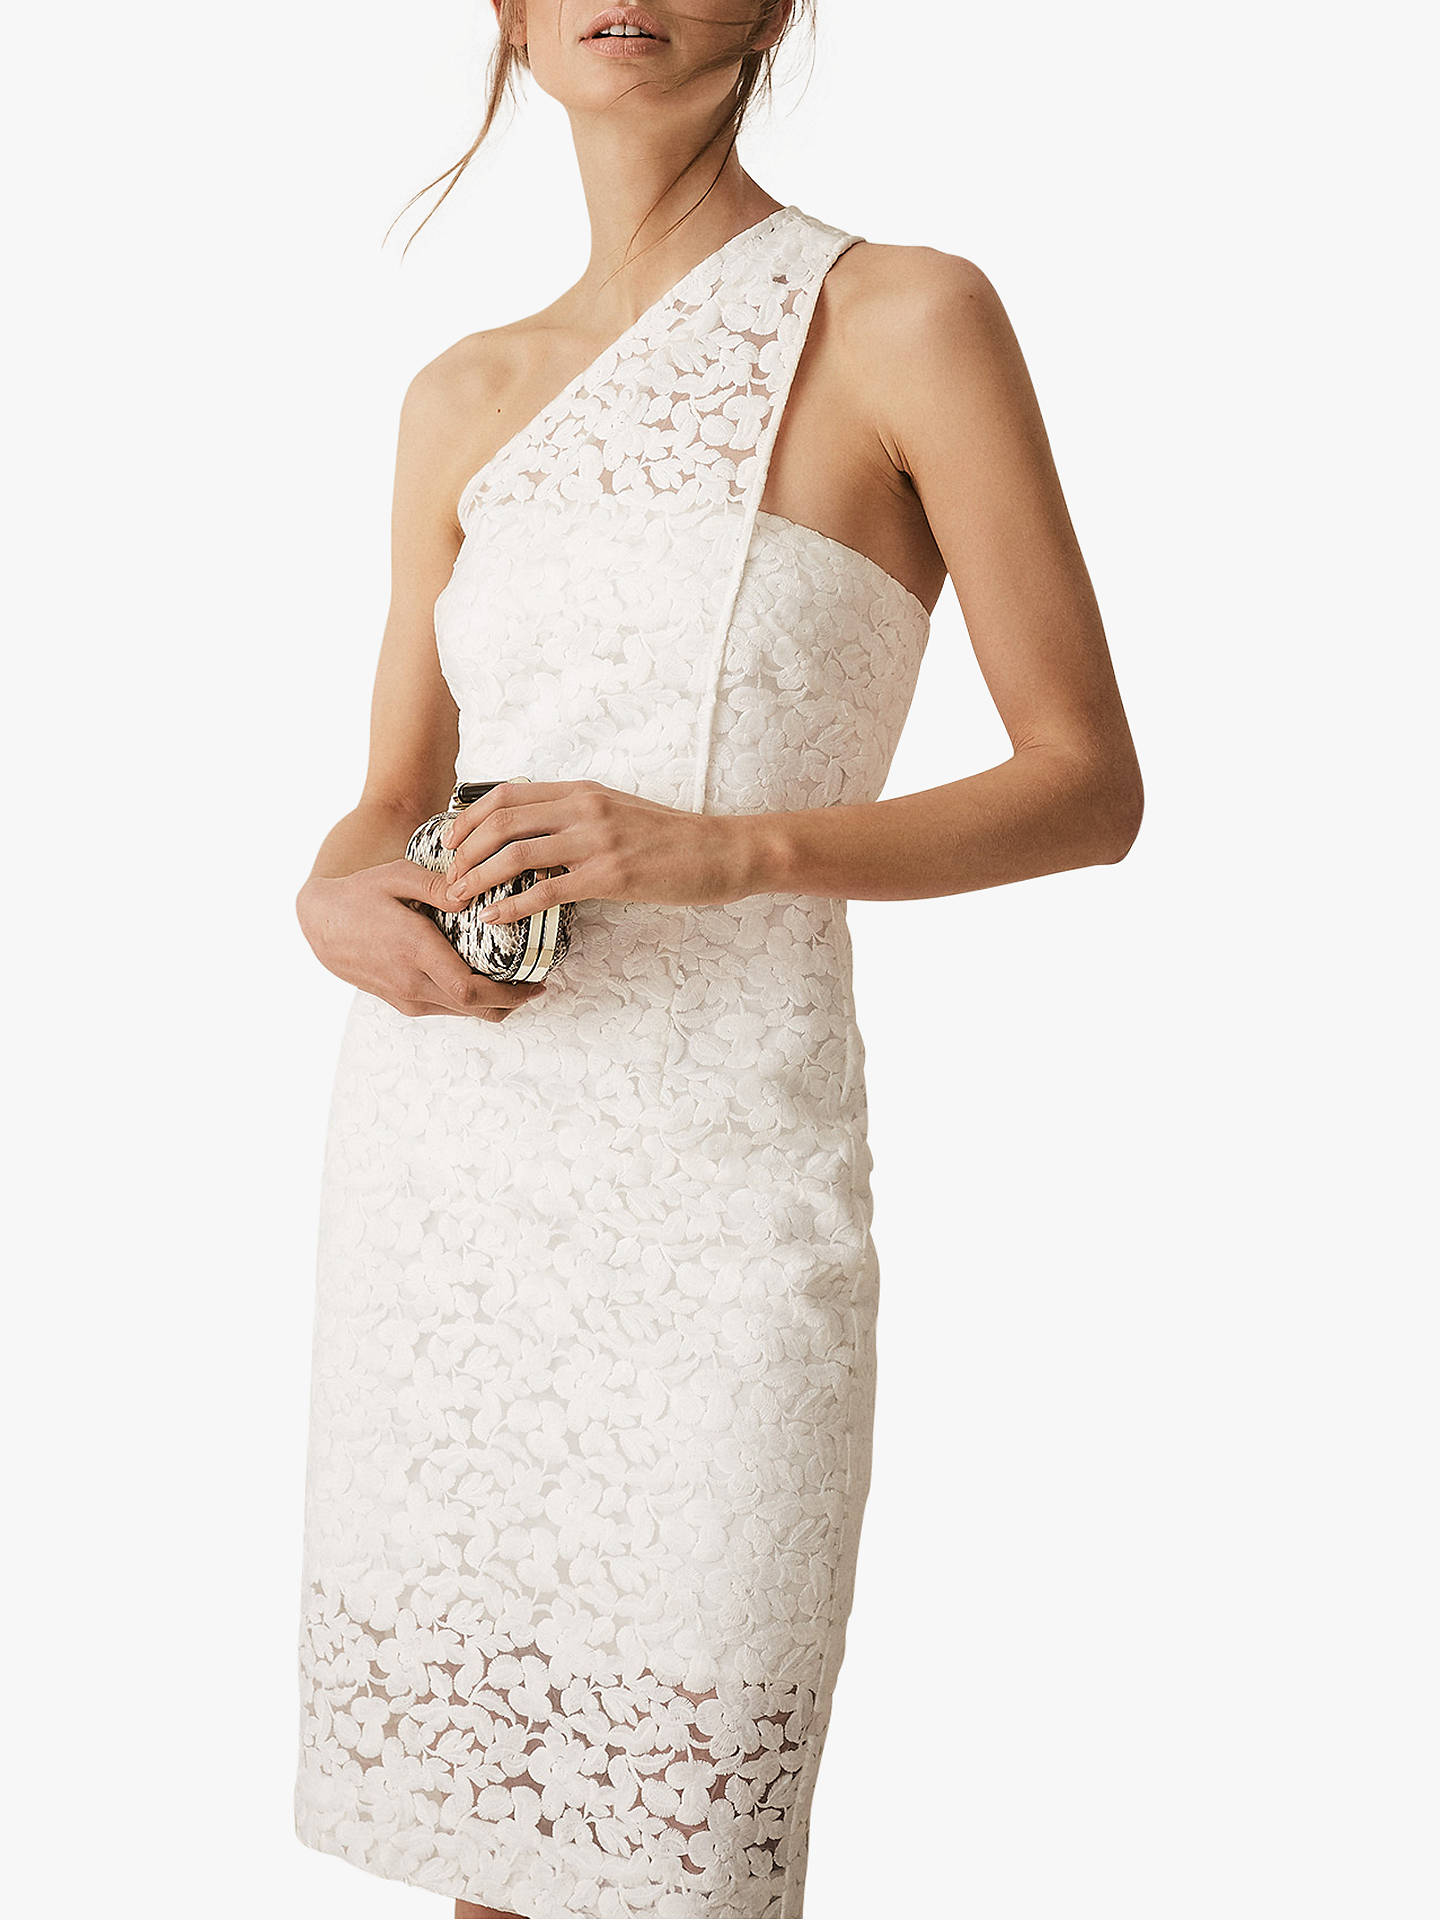 Reiss Sophia One Shoulder Lace Embroidered Dress, White by Reiss